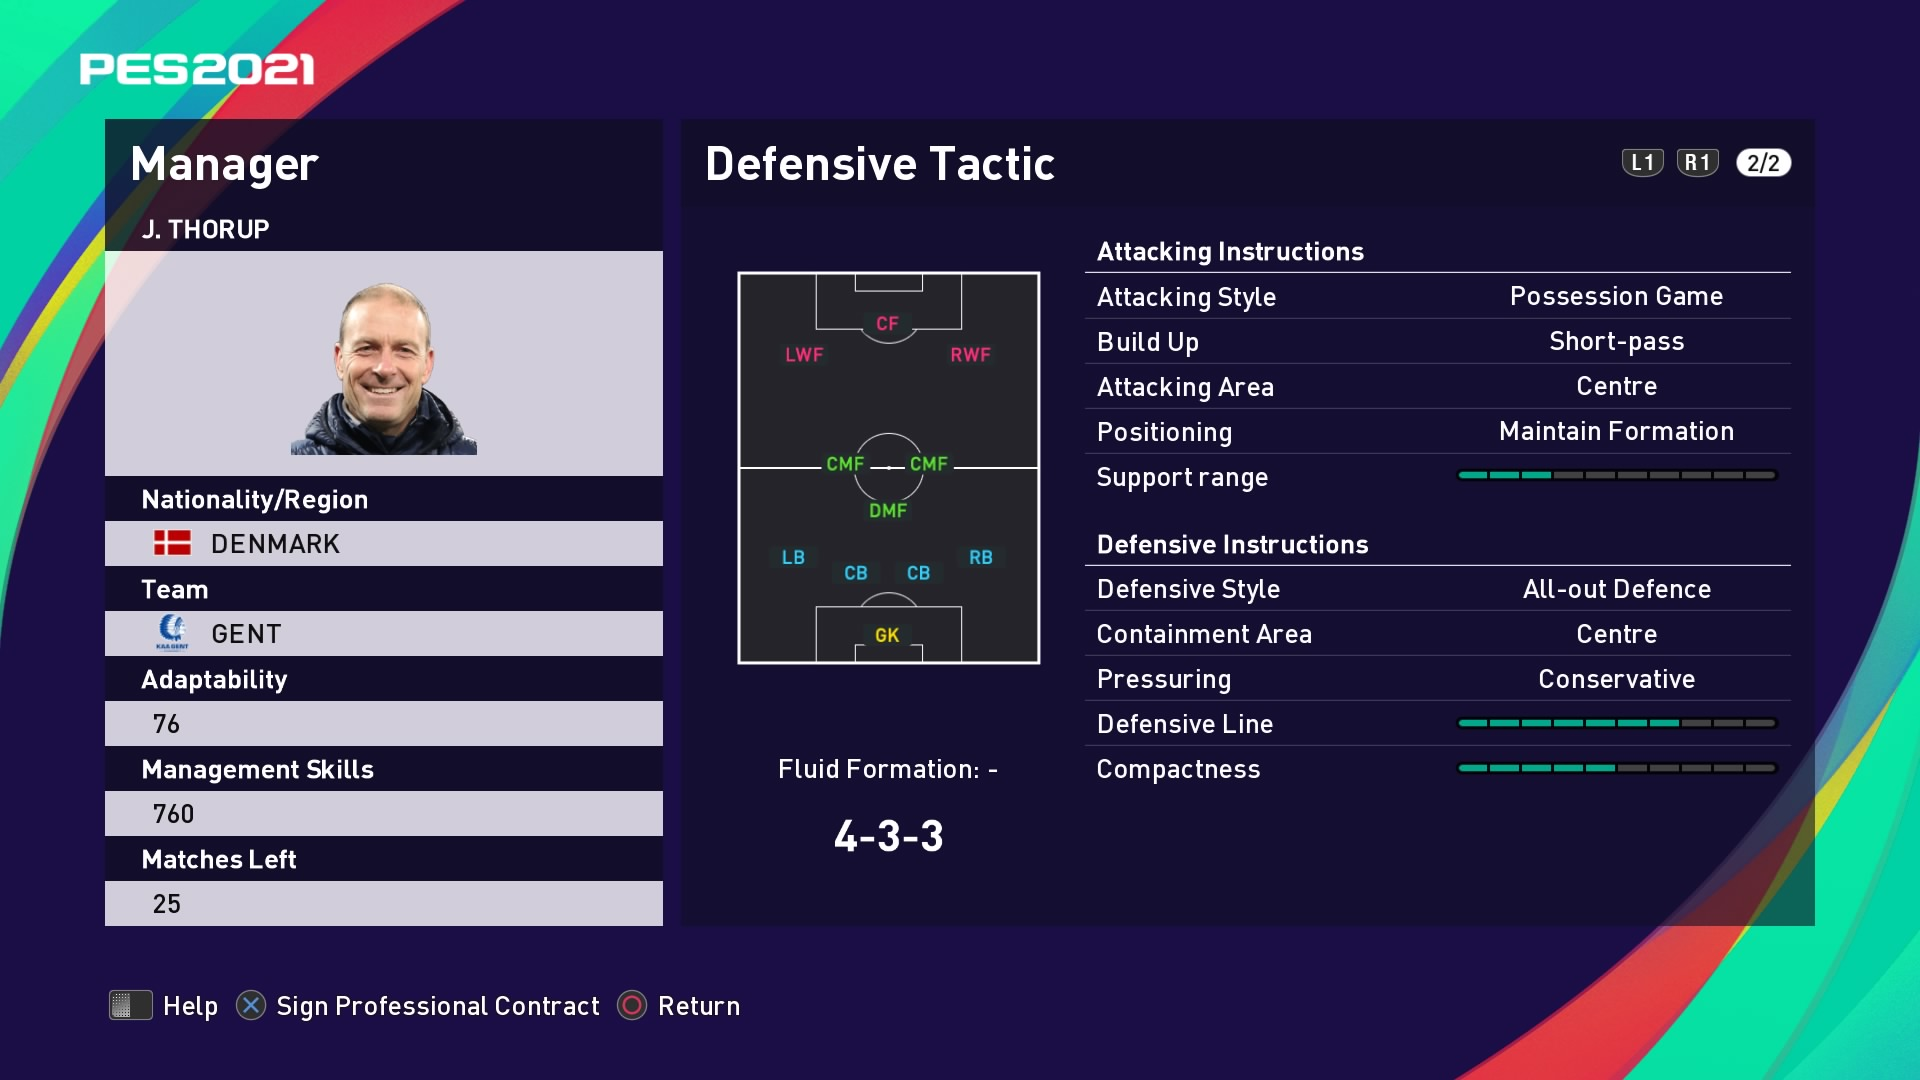 J. Thorup (Jess Thorup) Defensive Tactic in PES 2021 myClub